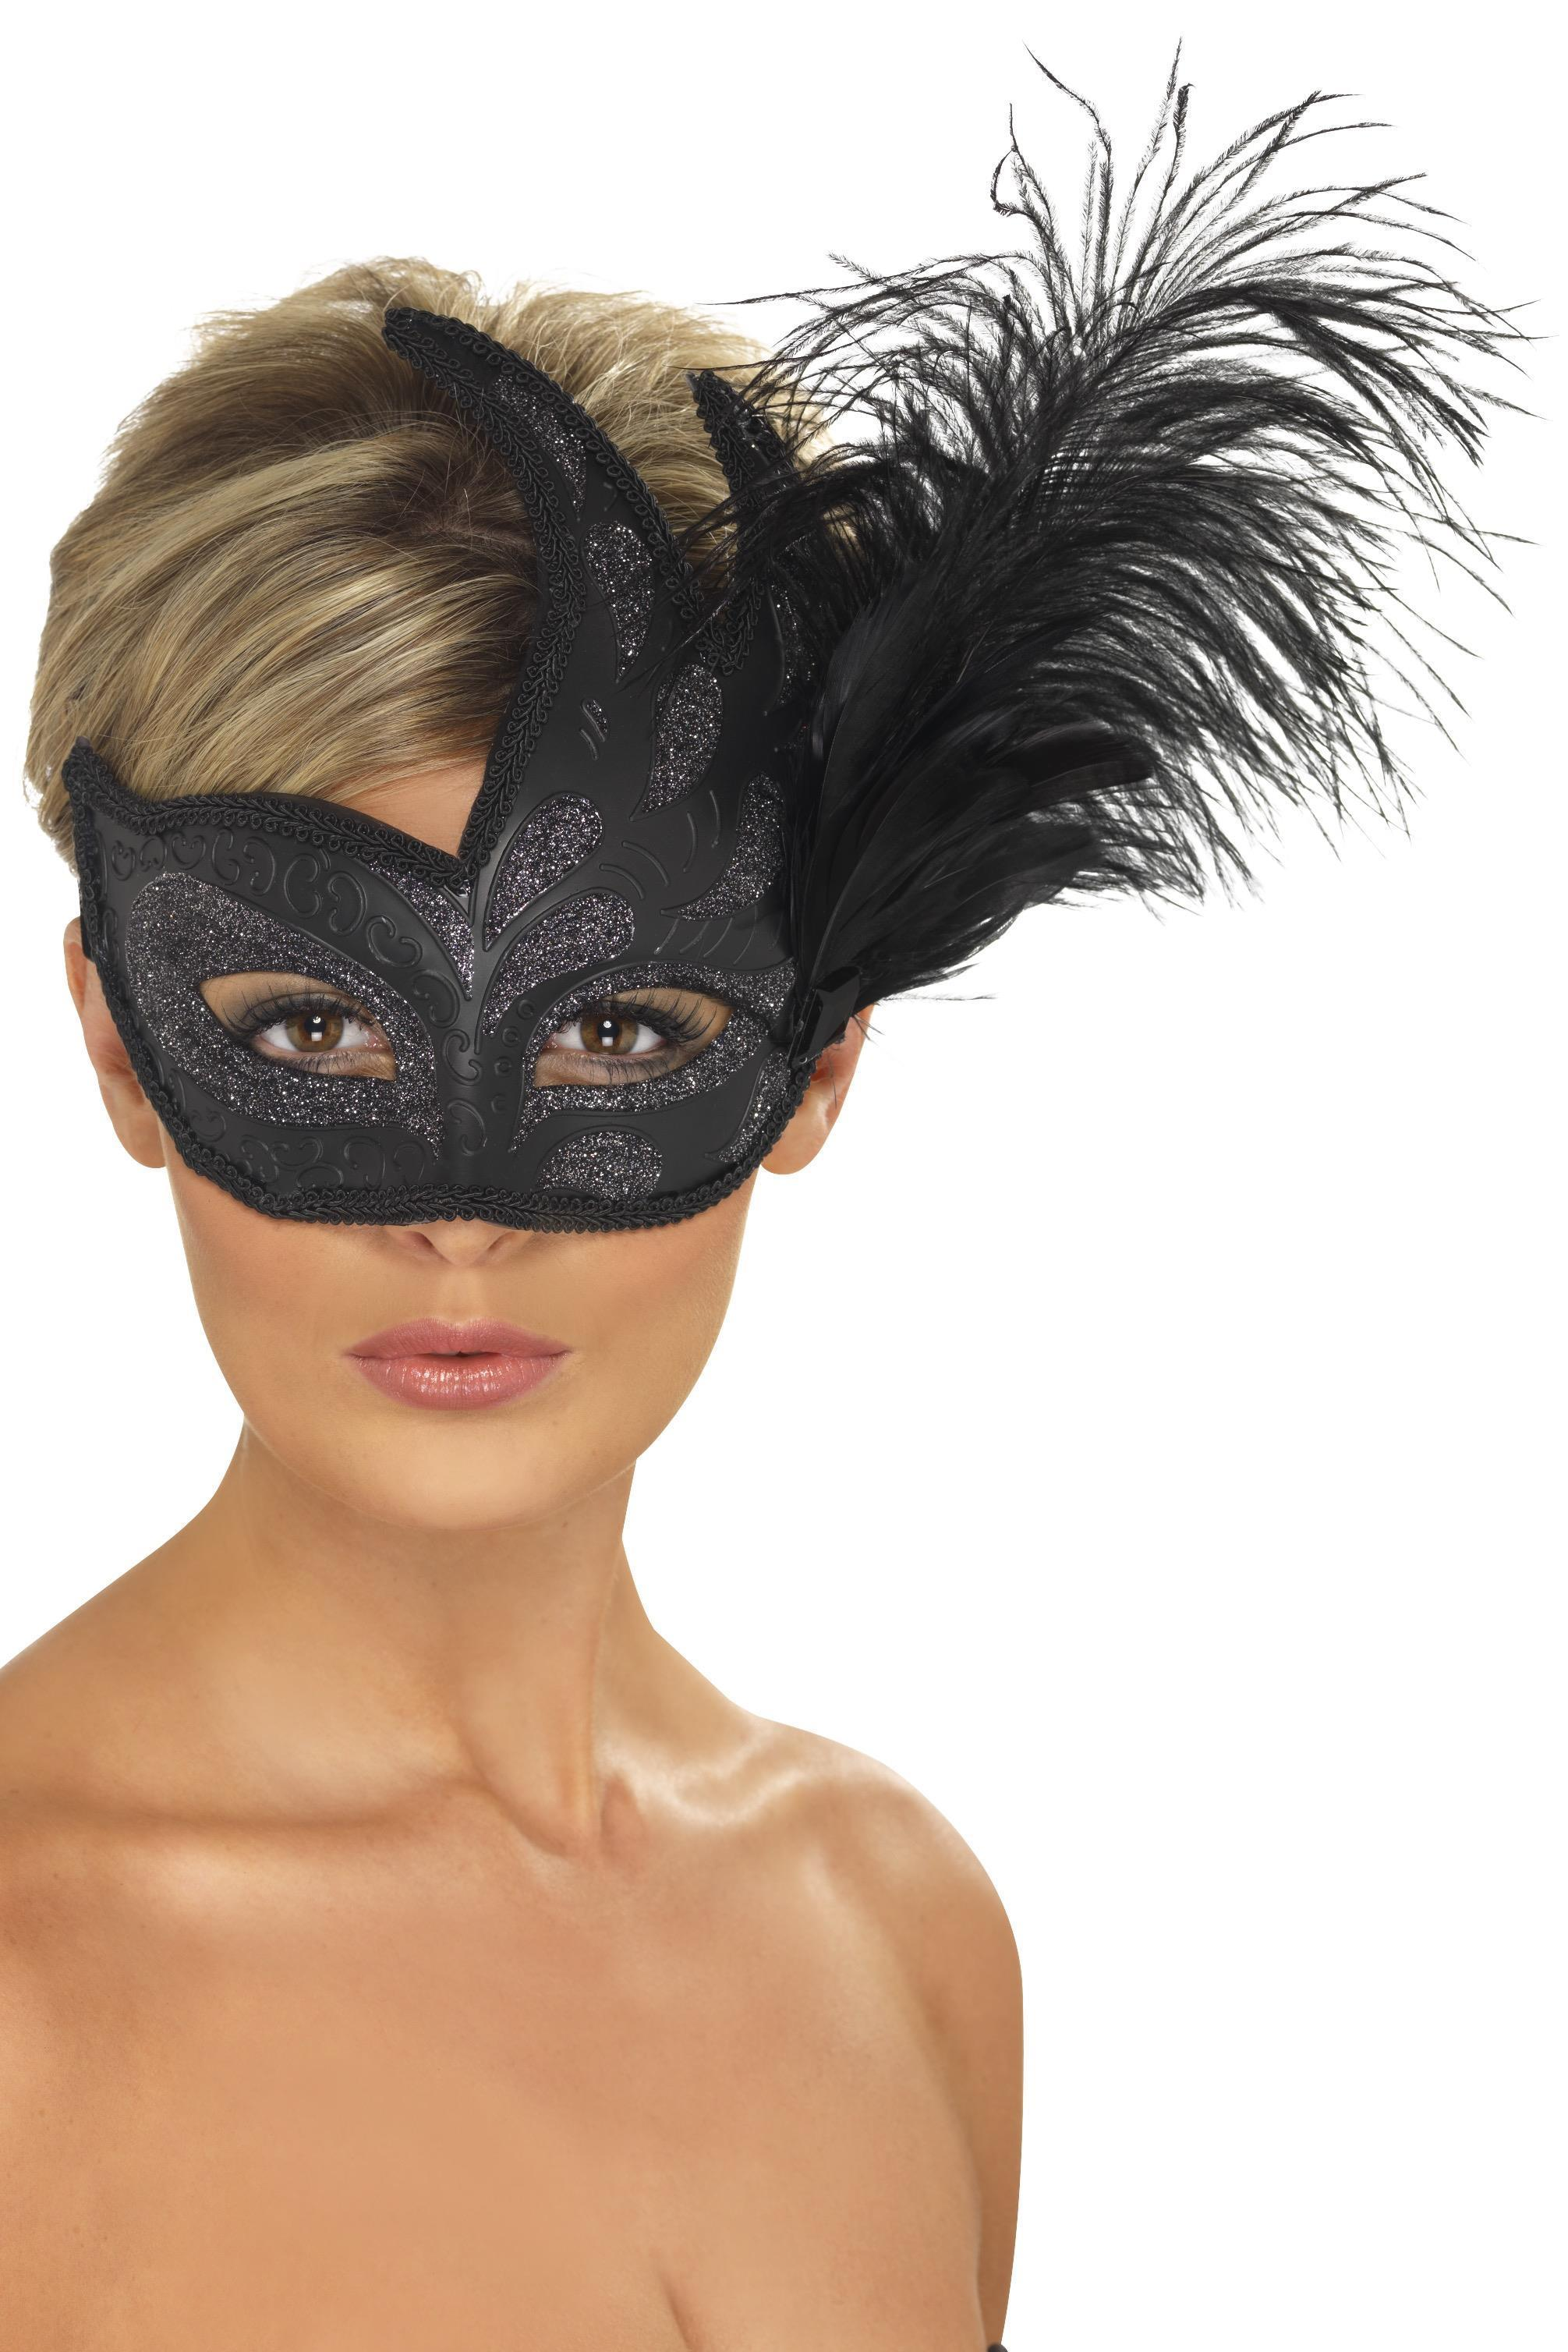 Ornate Colombina Feather Eye Mask Black